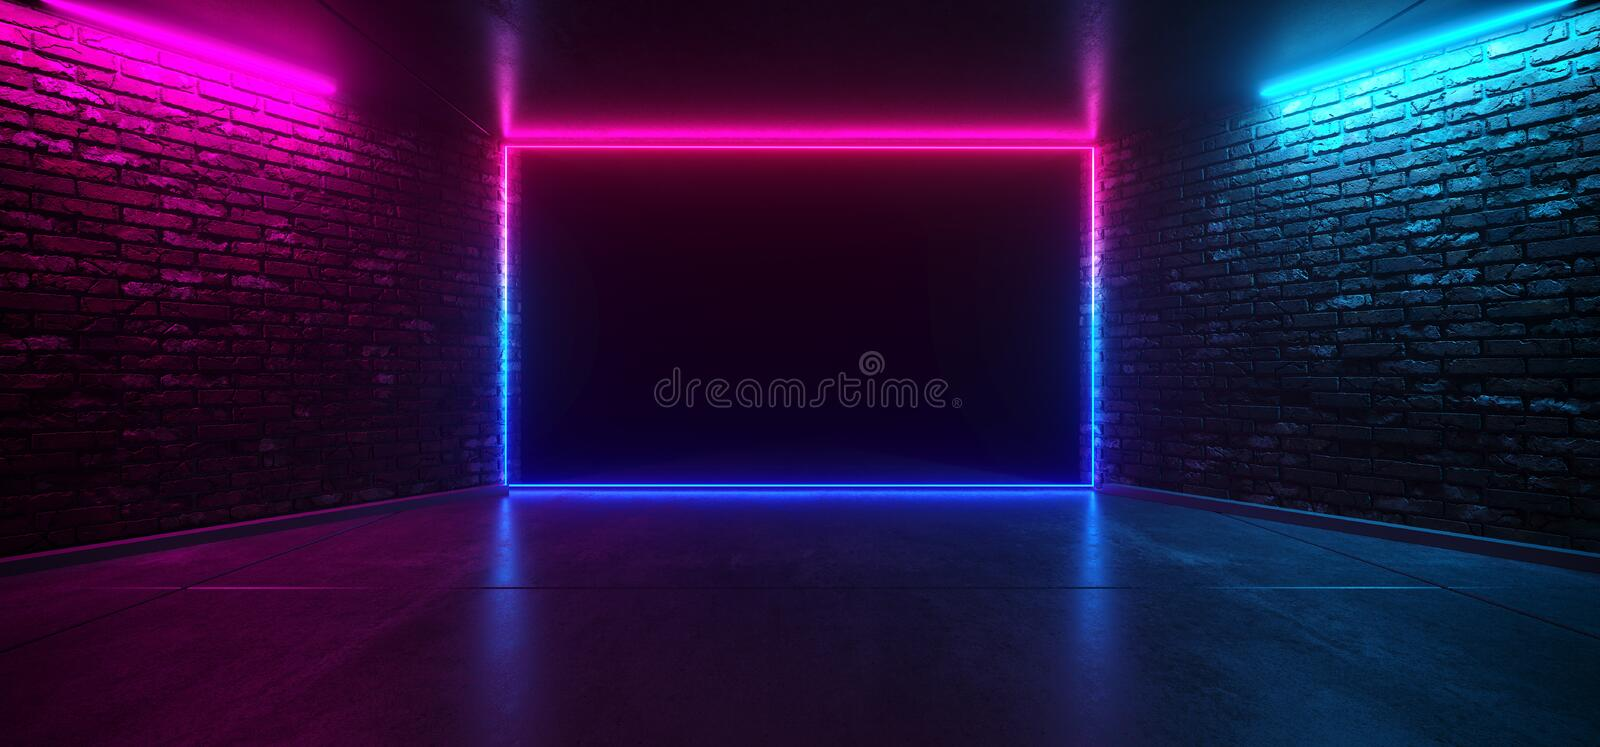 Futuristic Dance Club Neon Glowing Purple Blue Pink Retro Elegant Empty Stage Room With Reflective Grunge Concrete Brick Wall. Rectangle Shaped Neon Light Shape stock illustration